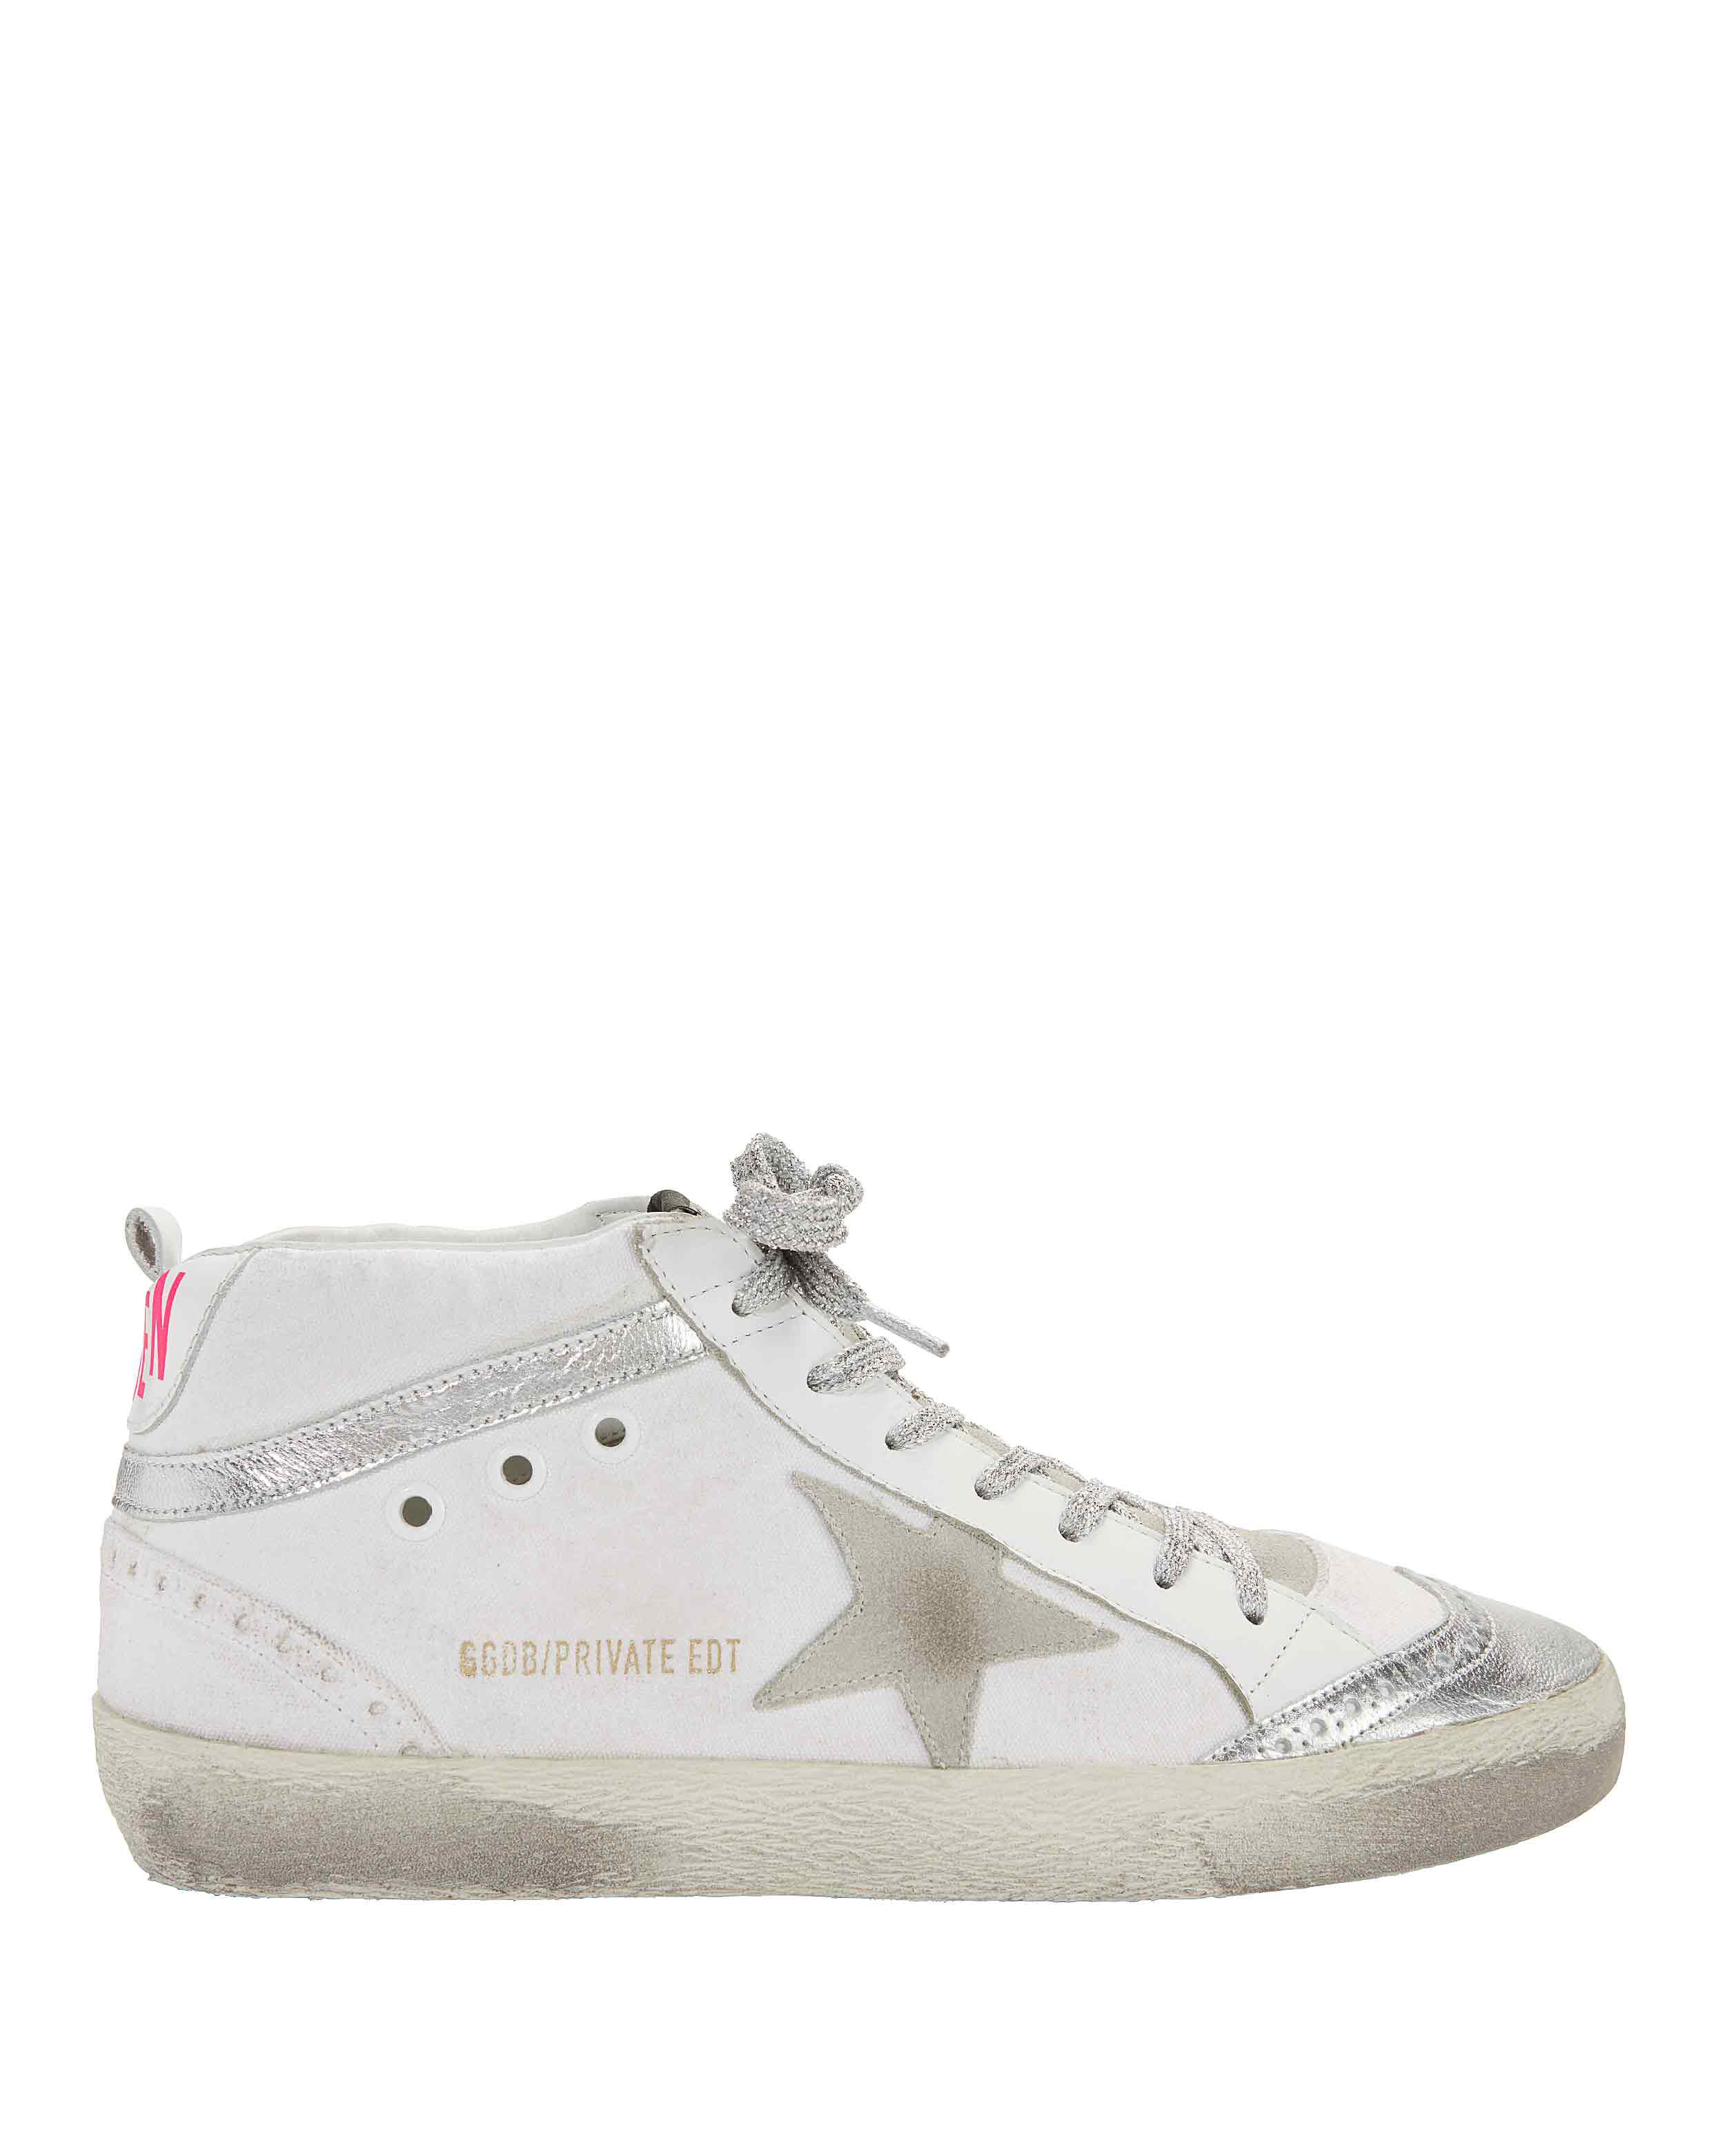 Sneakers for Women On Sale, Black, Suede leather, 2017, 7.5 8.5 Golden Goose